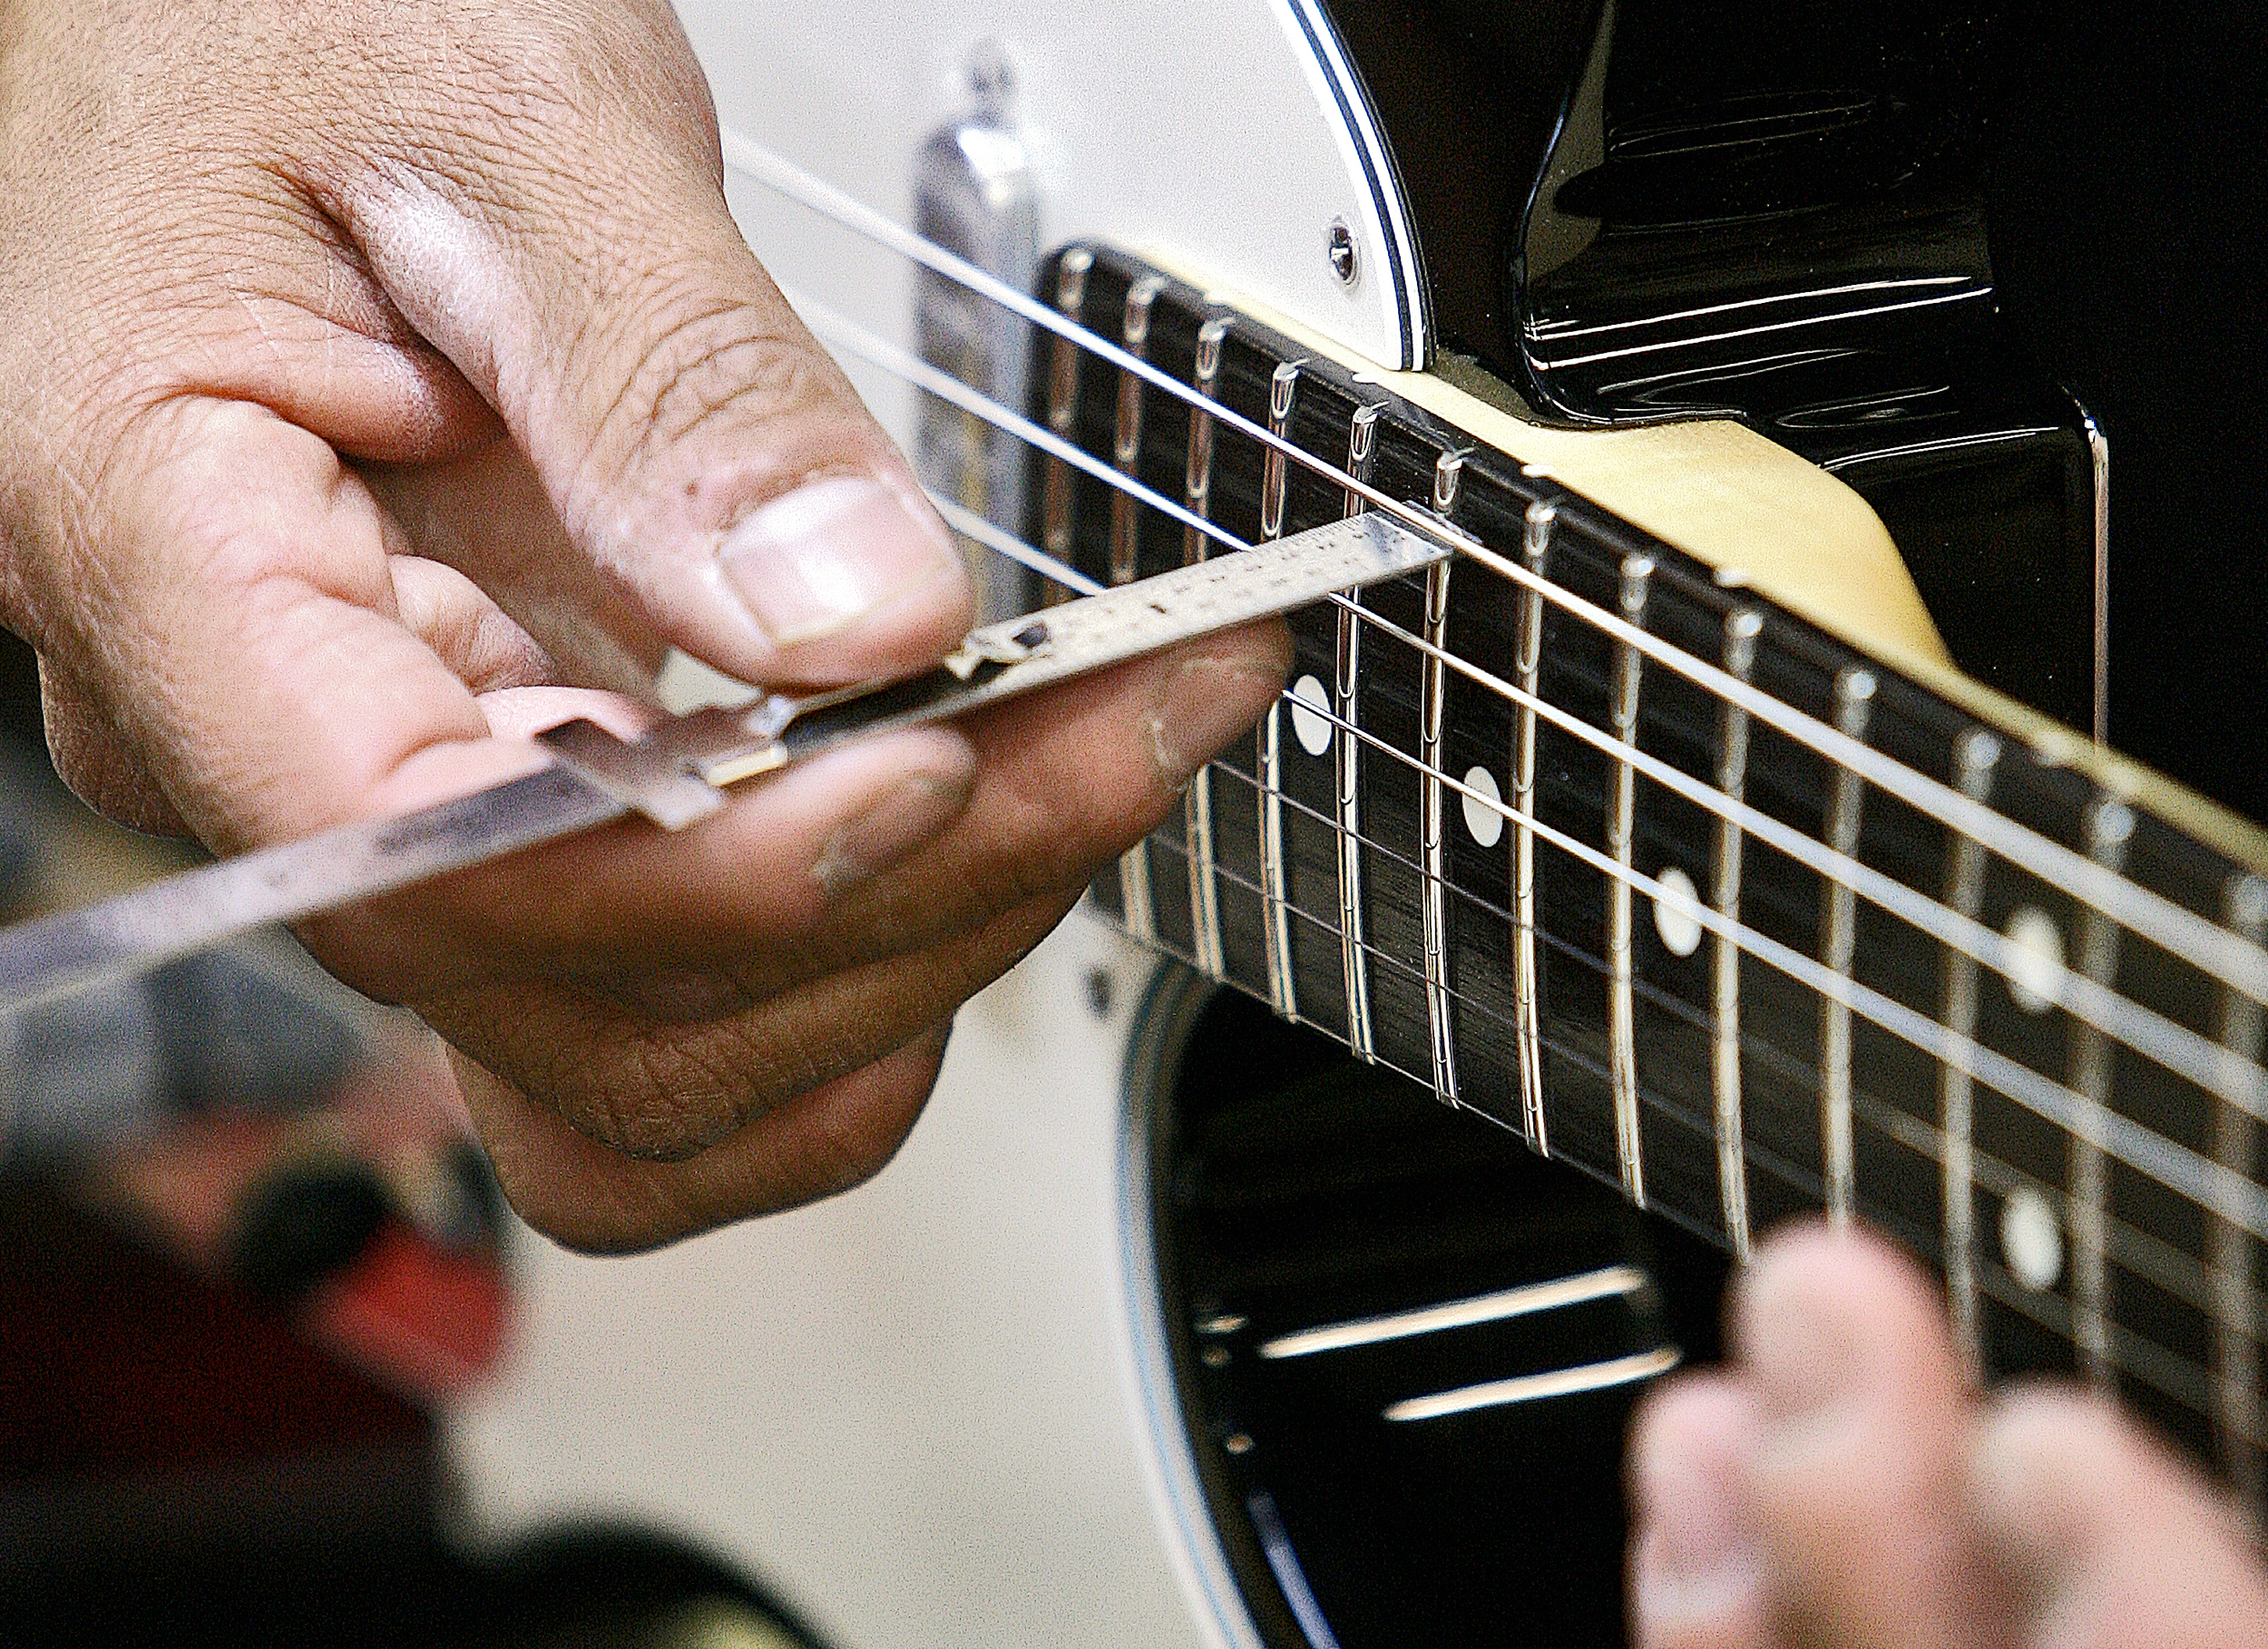 Let us make sure your guitar is in top playing condition. A setup guitar is easier to play and much more enjoyable!